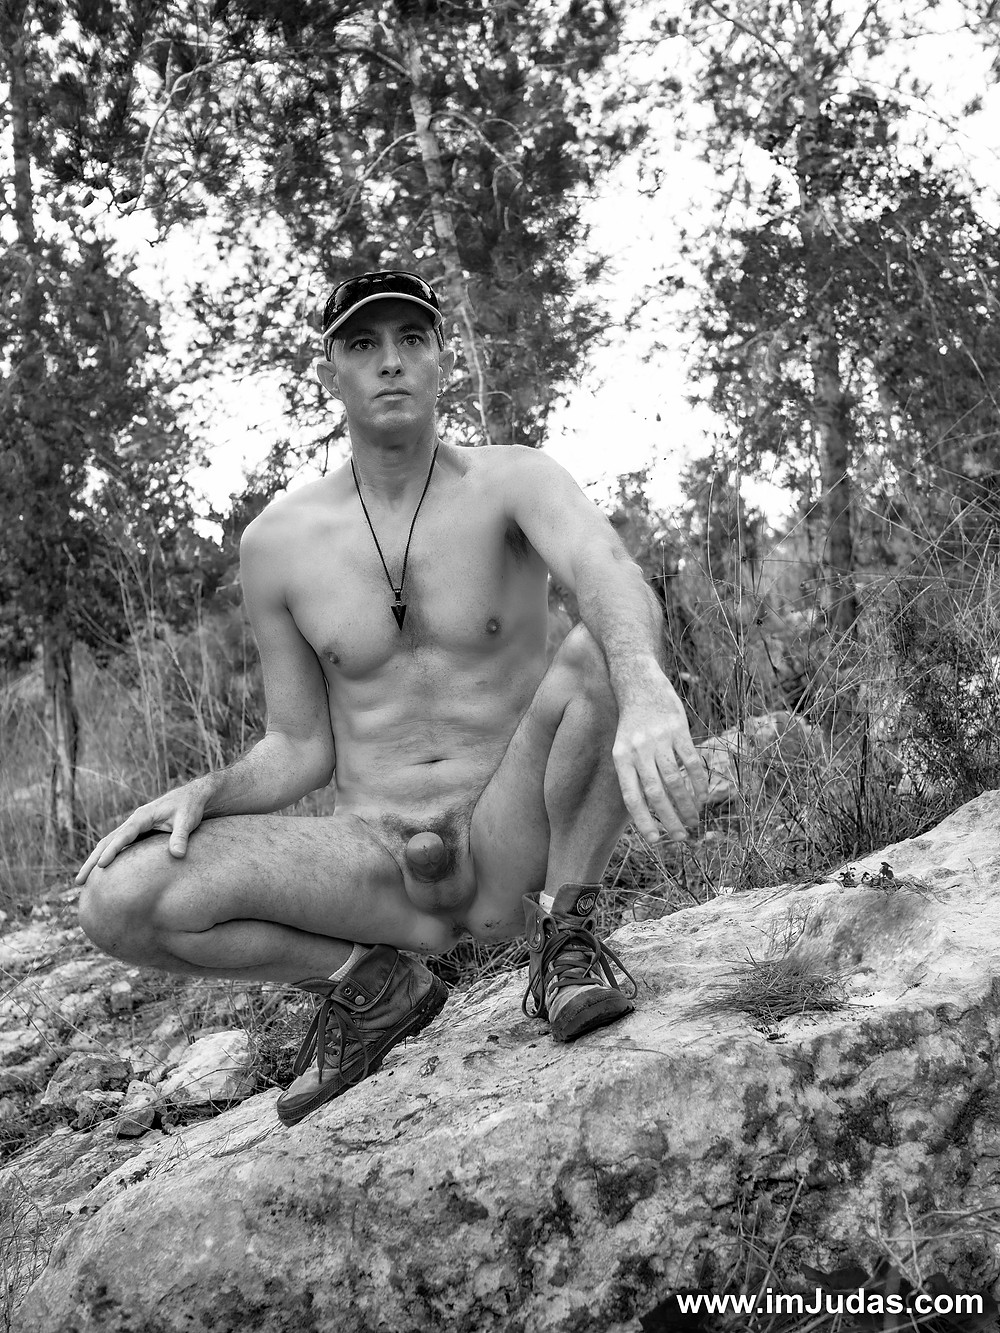 A beautiful naked afternoon in the forest